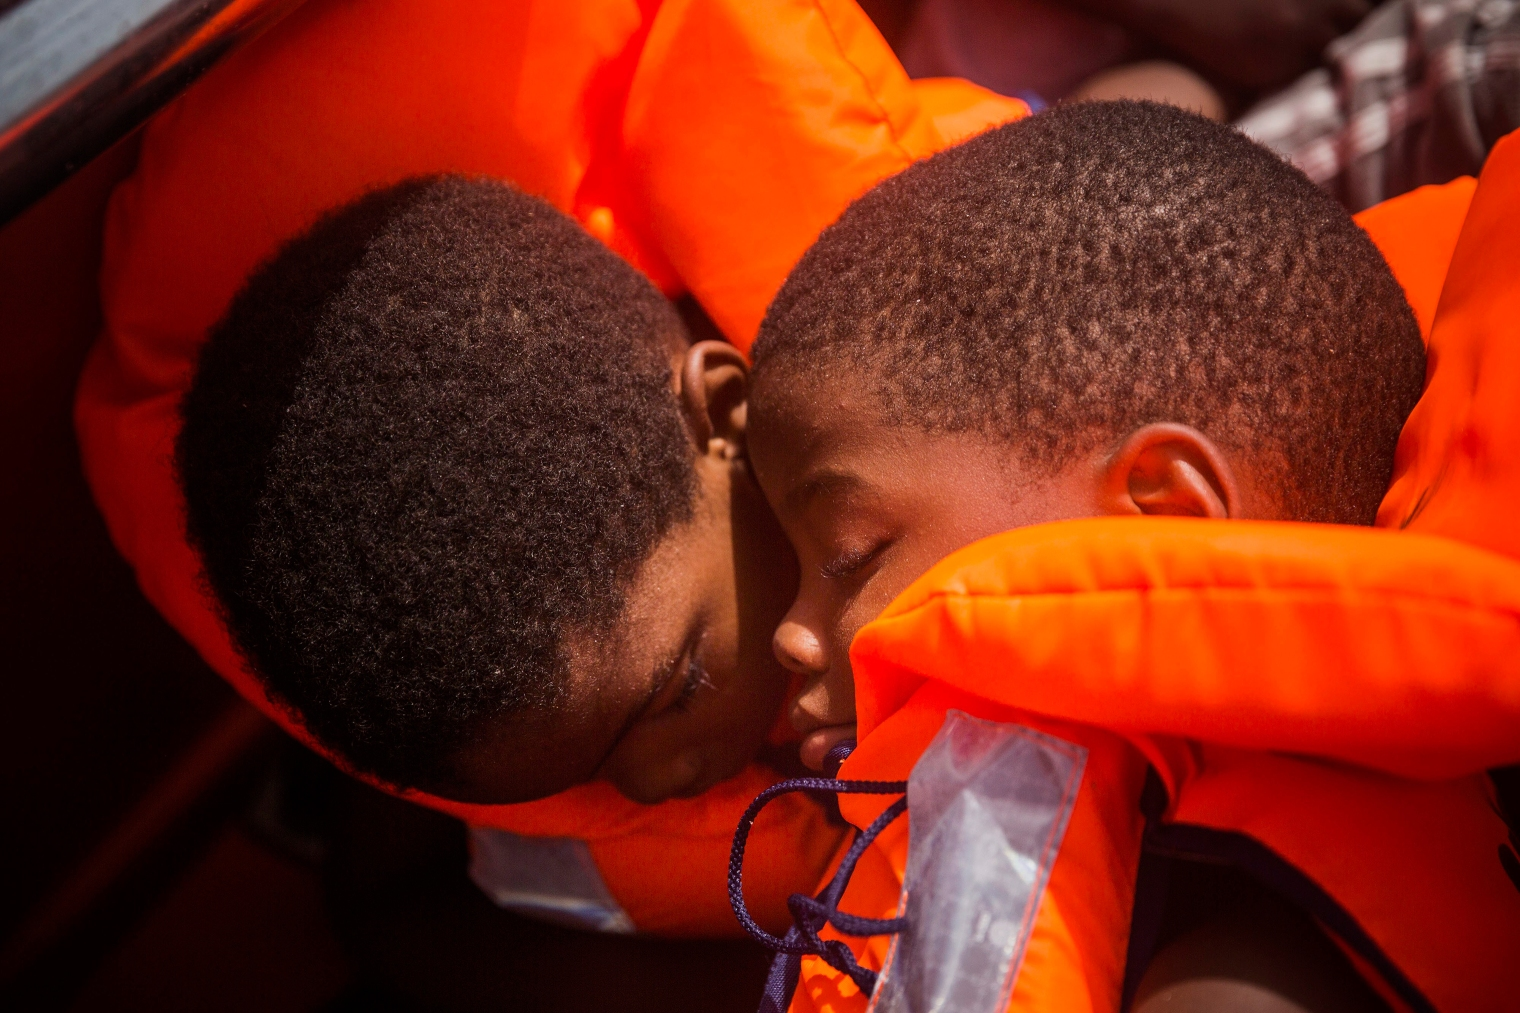 Two children sit in life jackets during their rescue.